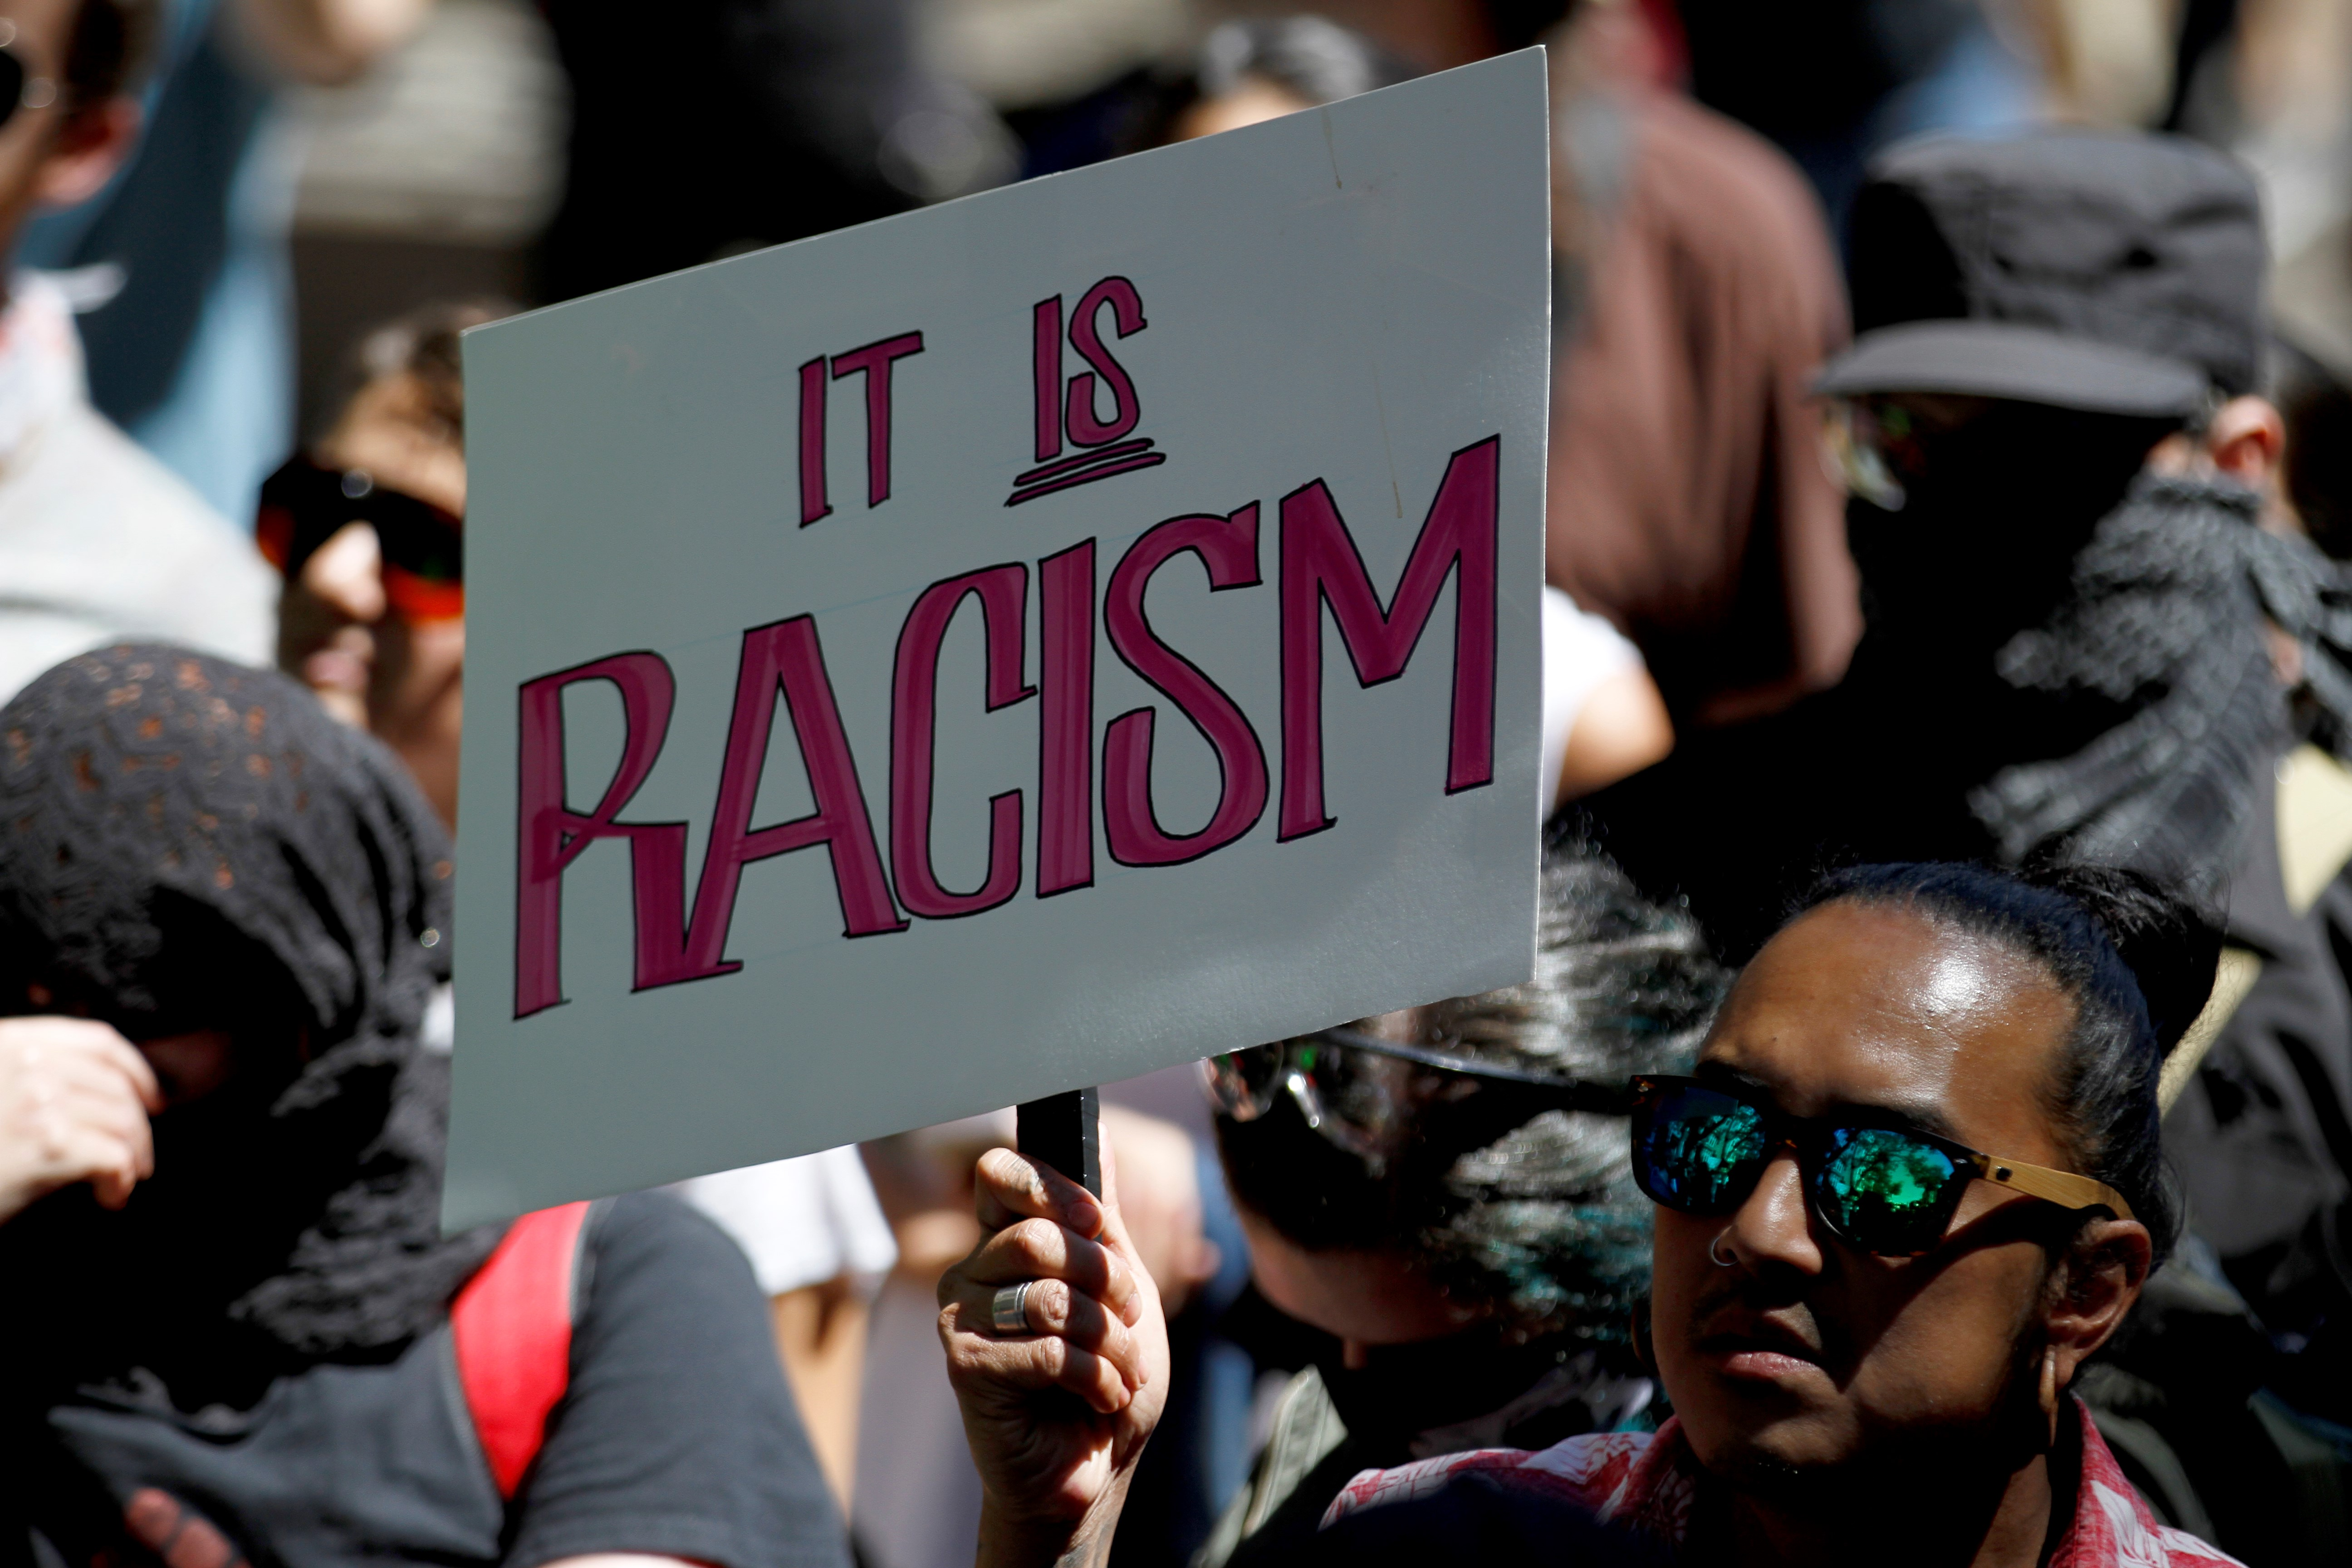 Protest against racism in San Francisco